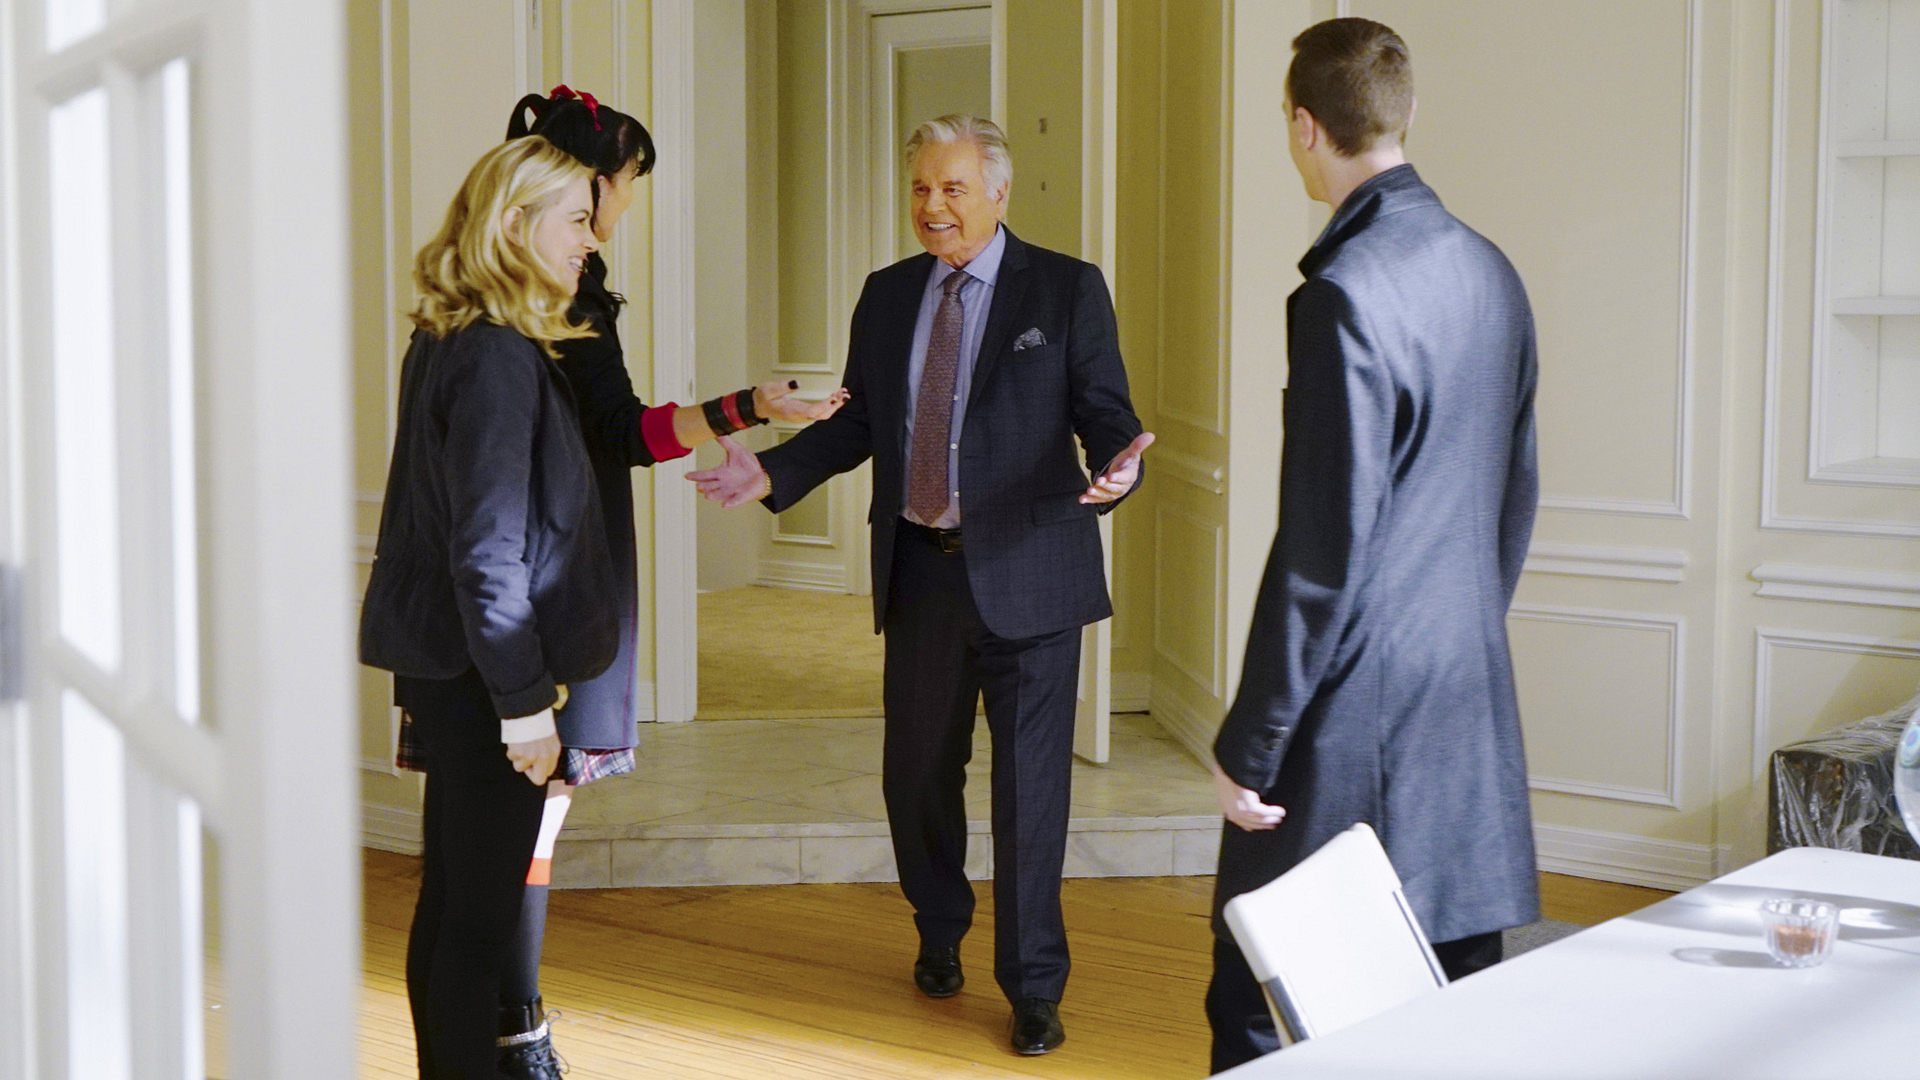 Anthony DiNozzo, Sr. greets Bishop, Abby, and McGee.